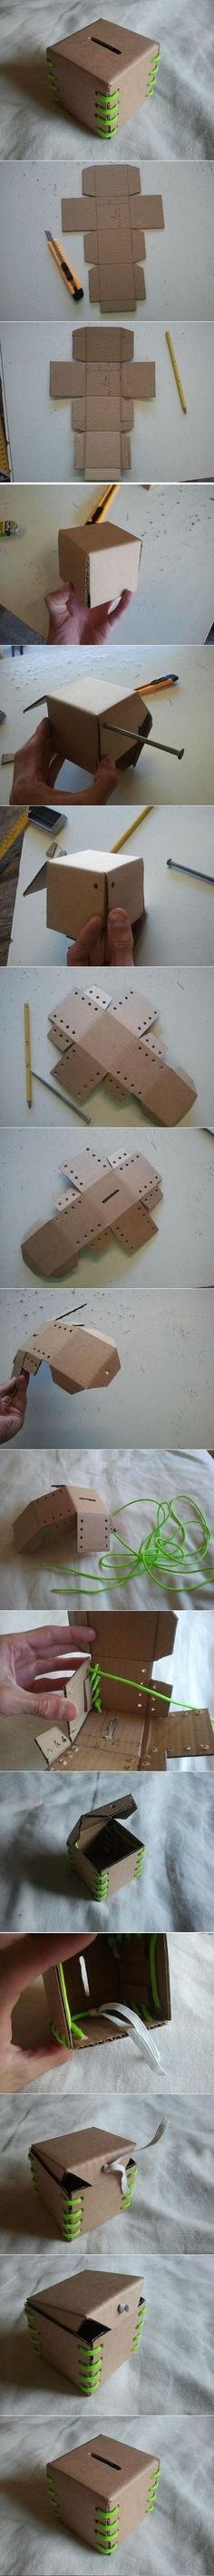 DIY Cardboard Piggy Bank DIY Cardboard Piggy Bank